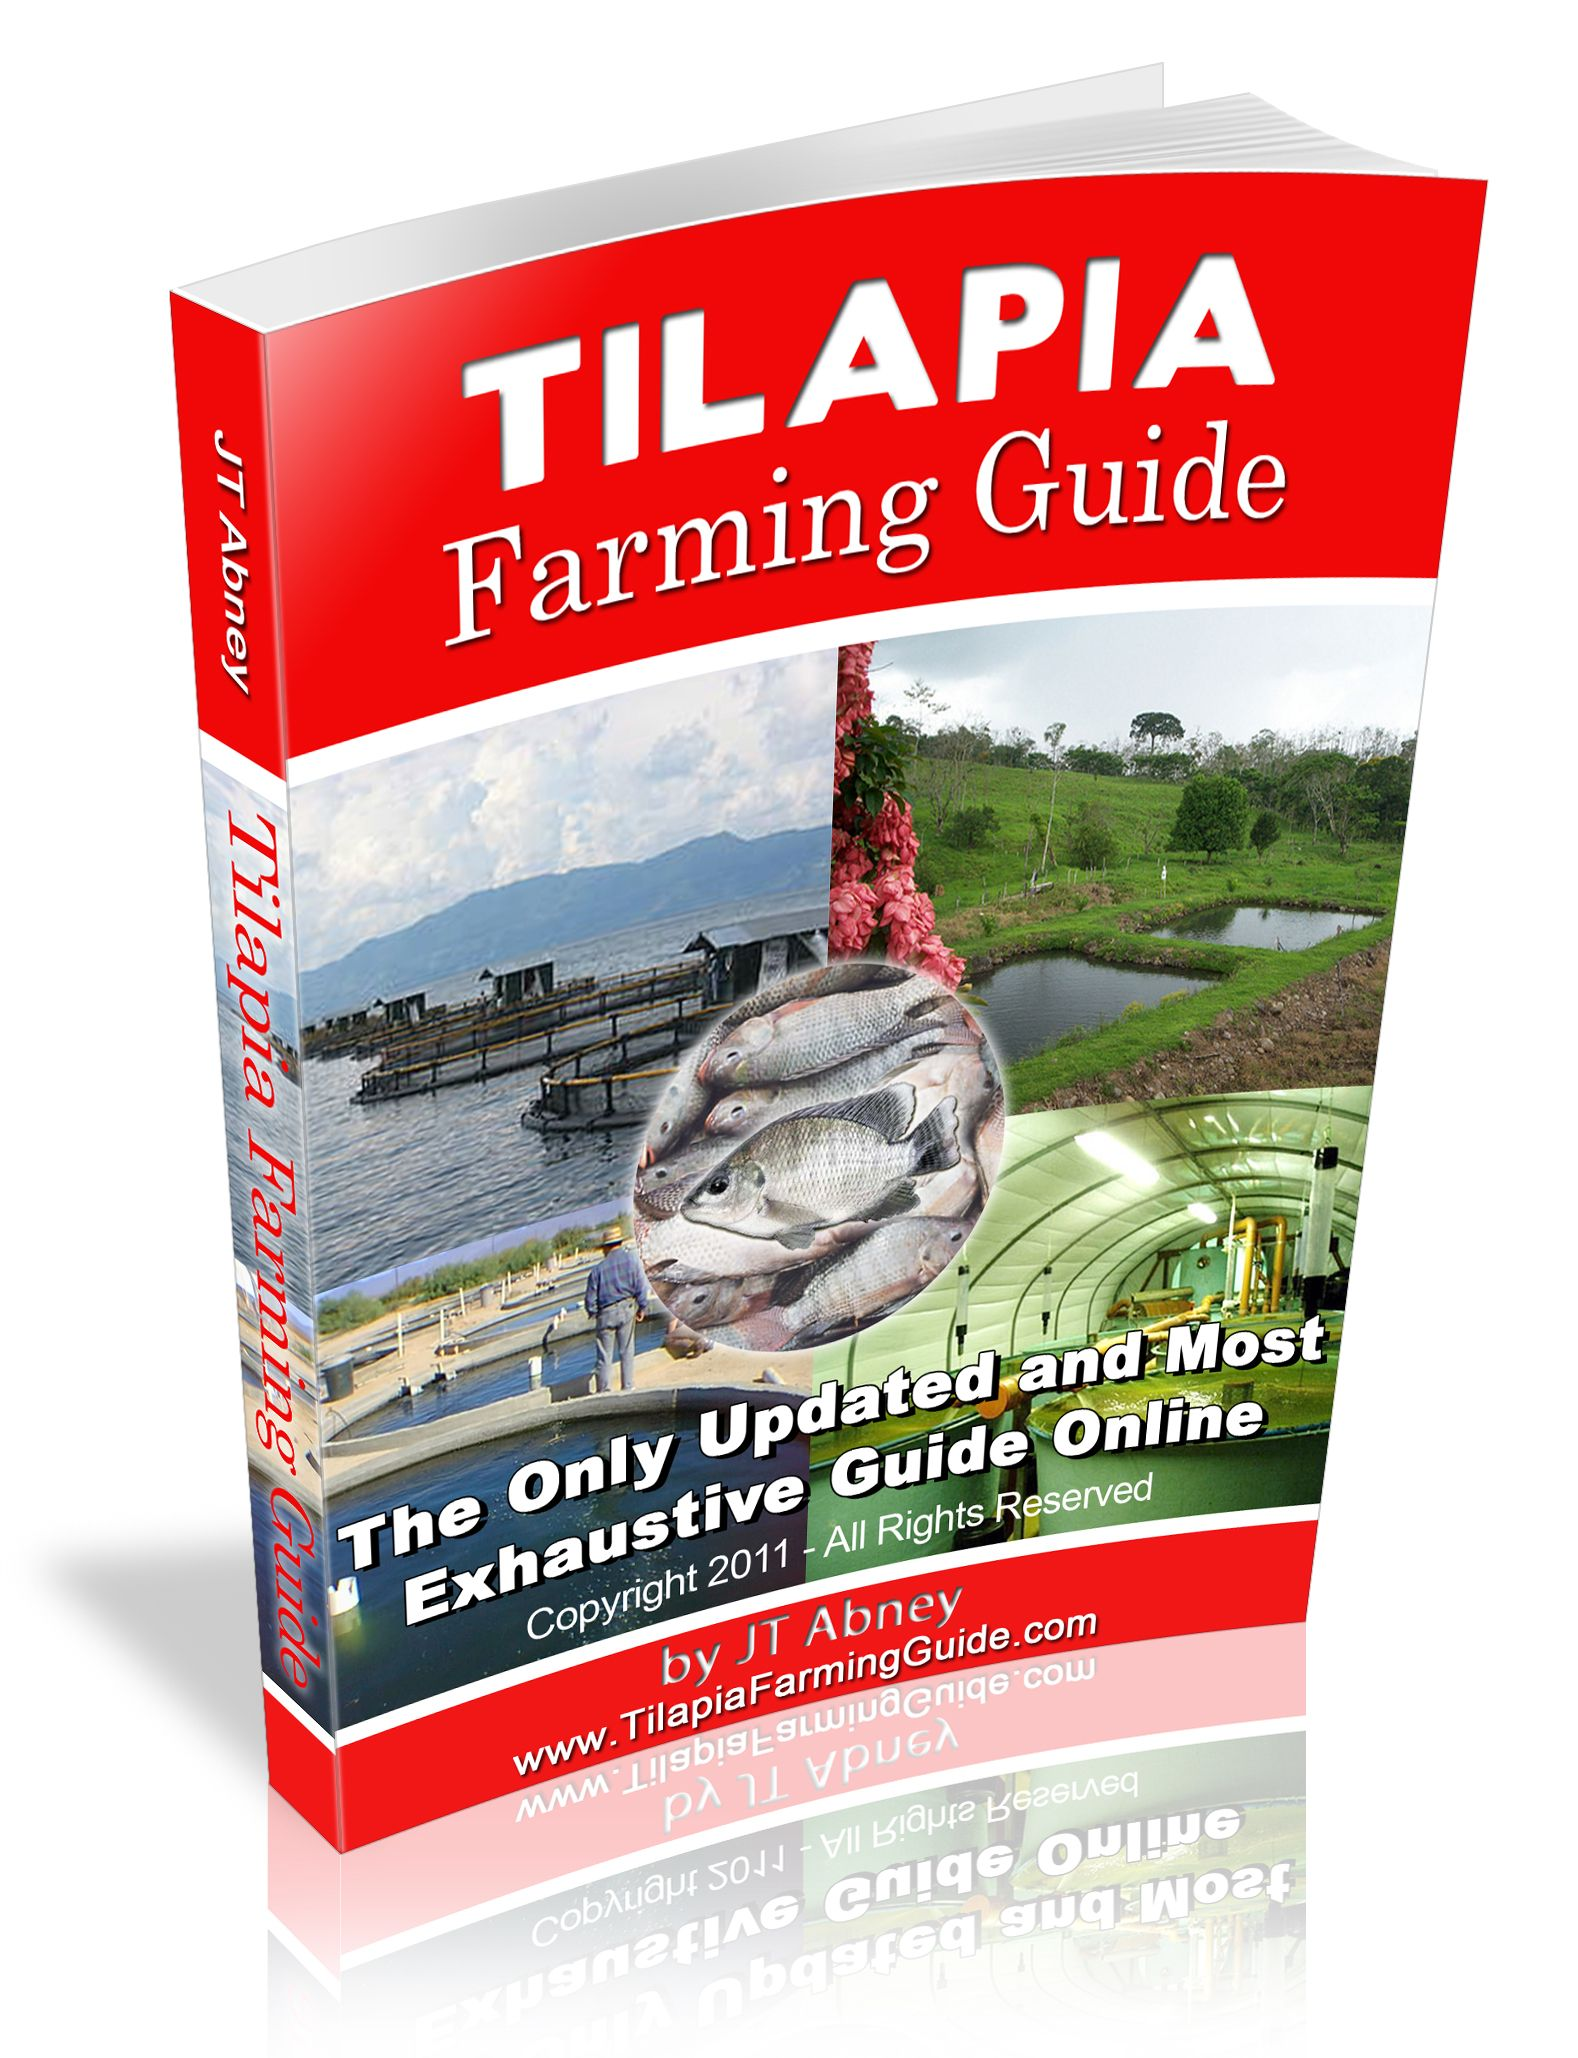 tilapia farming guide crafty things pinterest tilapia farming rh pinterest com tilapia farming guide philippines tilapia farming guide pdf philippines